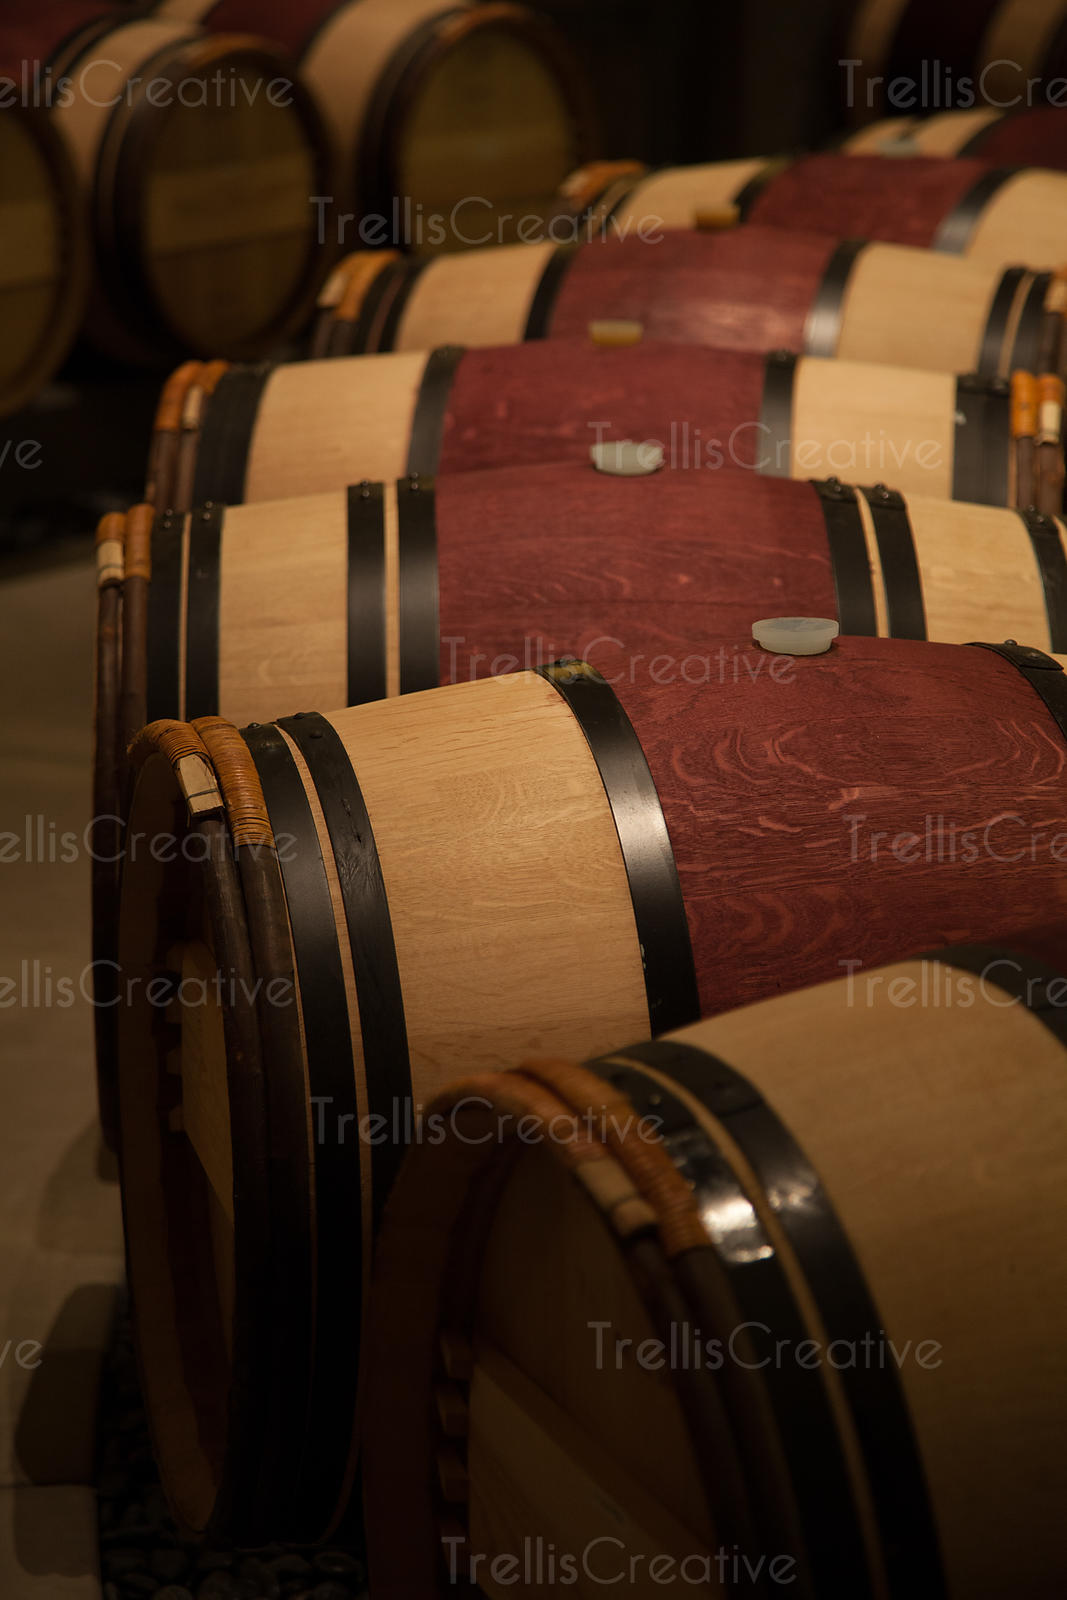 Traditional French oak wine barrels in a winery cellar